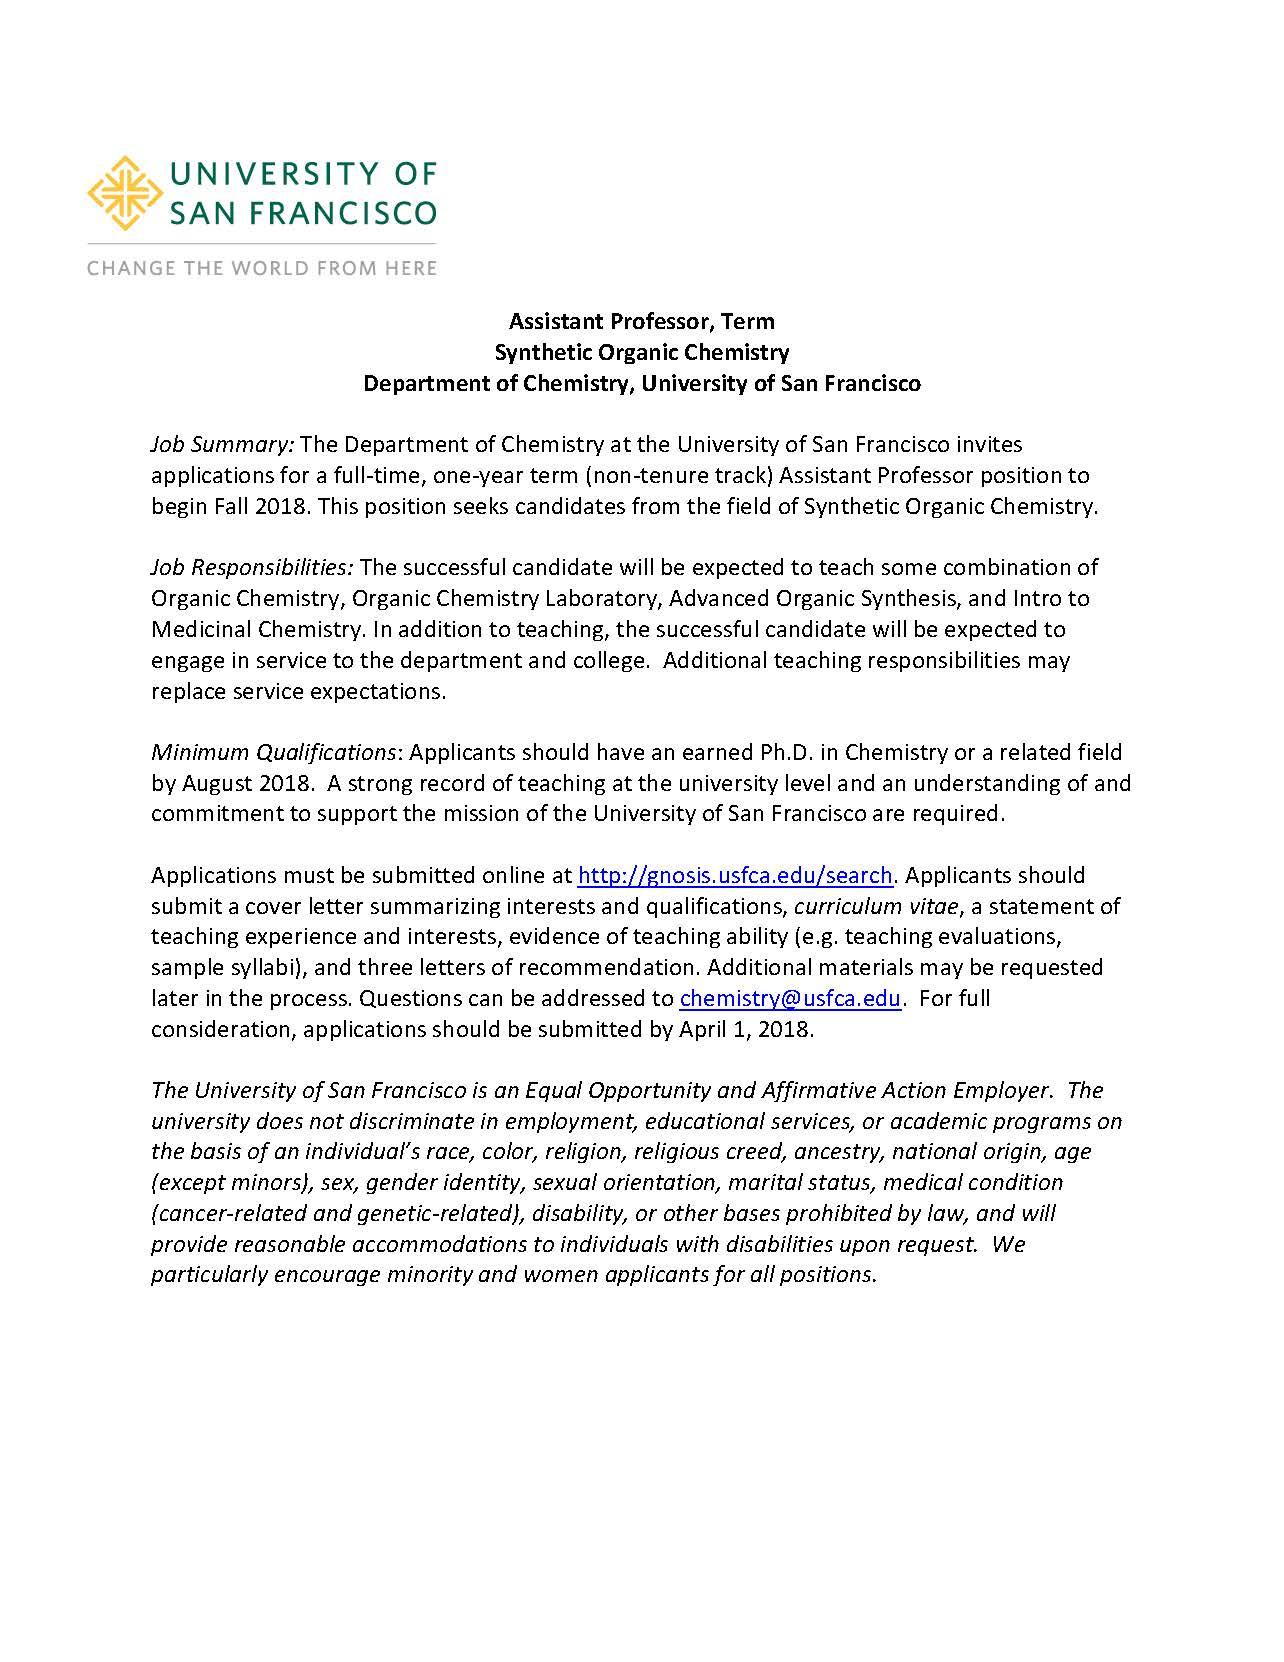 Cover Letter For Professor Position from ucsdchemopportunities.files.wordpress.com